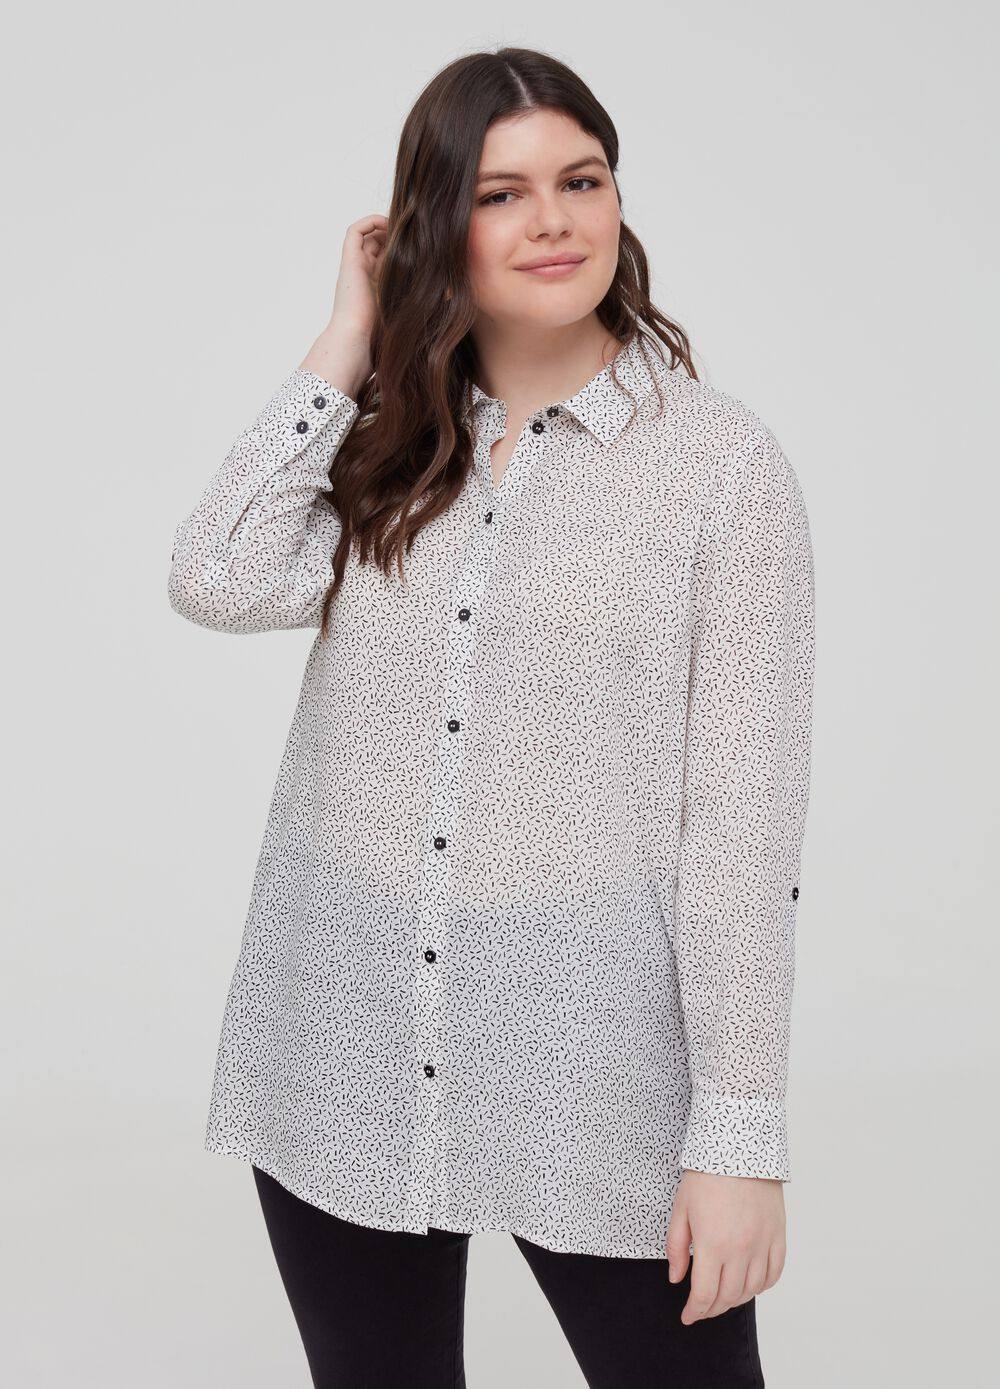 Curvy patterned shirt in 100% viscose